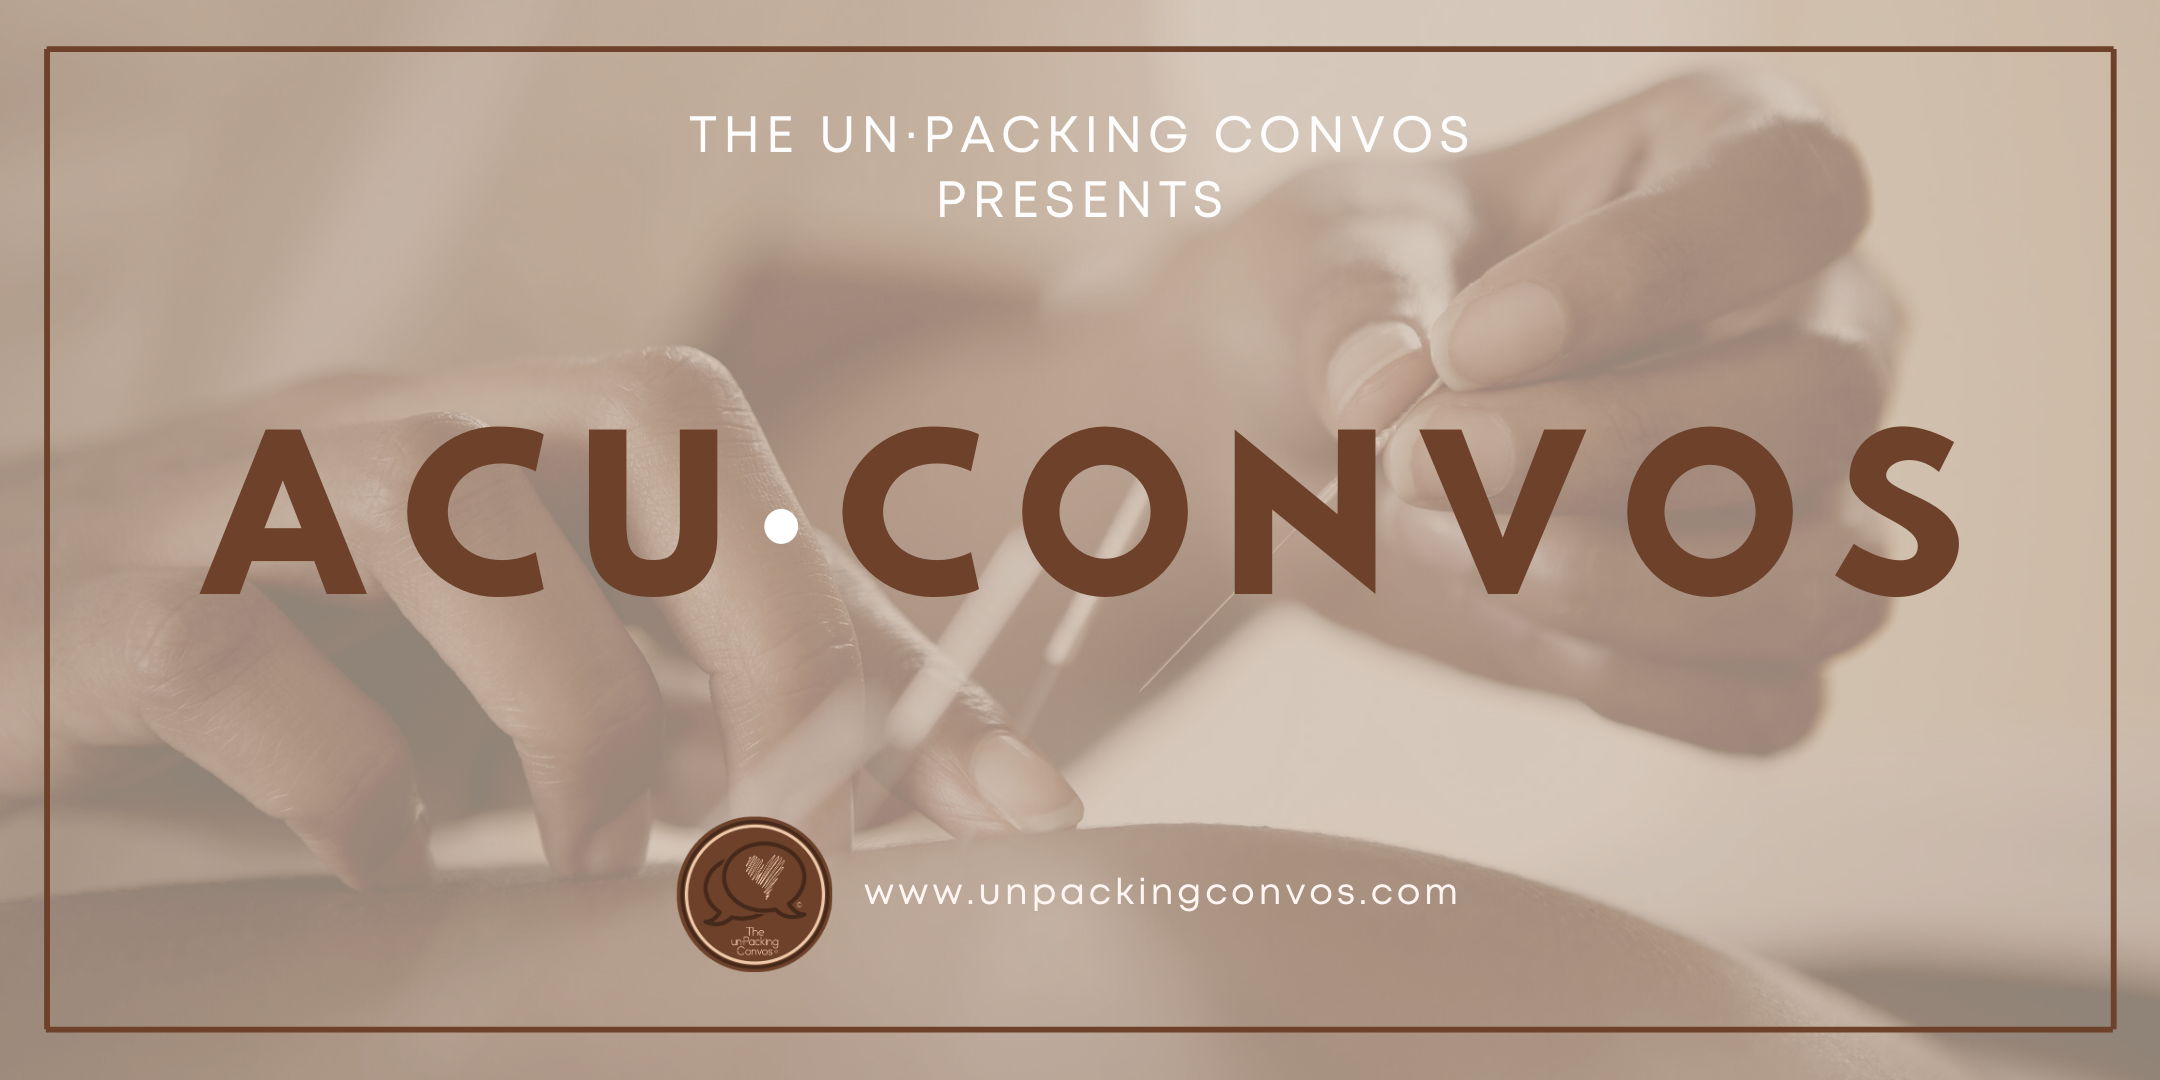 A New Conversational series to the unPacking Convos called AcuConvos overlaying an acupuncturists applying needles to a patient. The UnPacking Convos logo is placed next to its listed website.